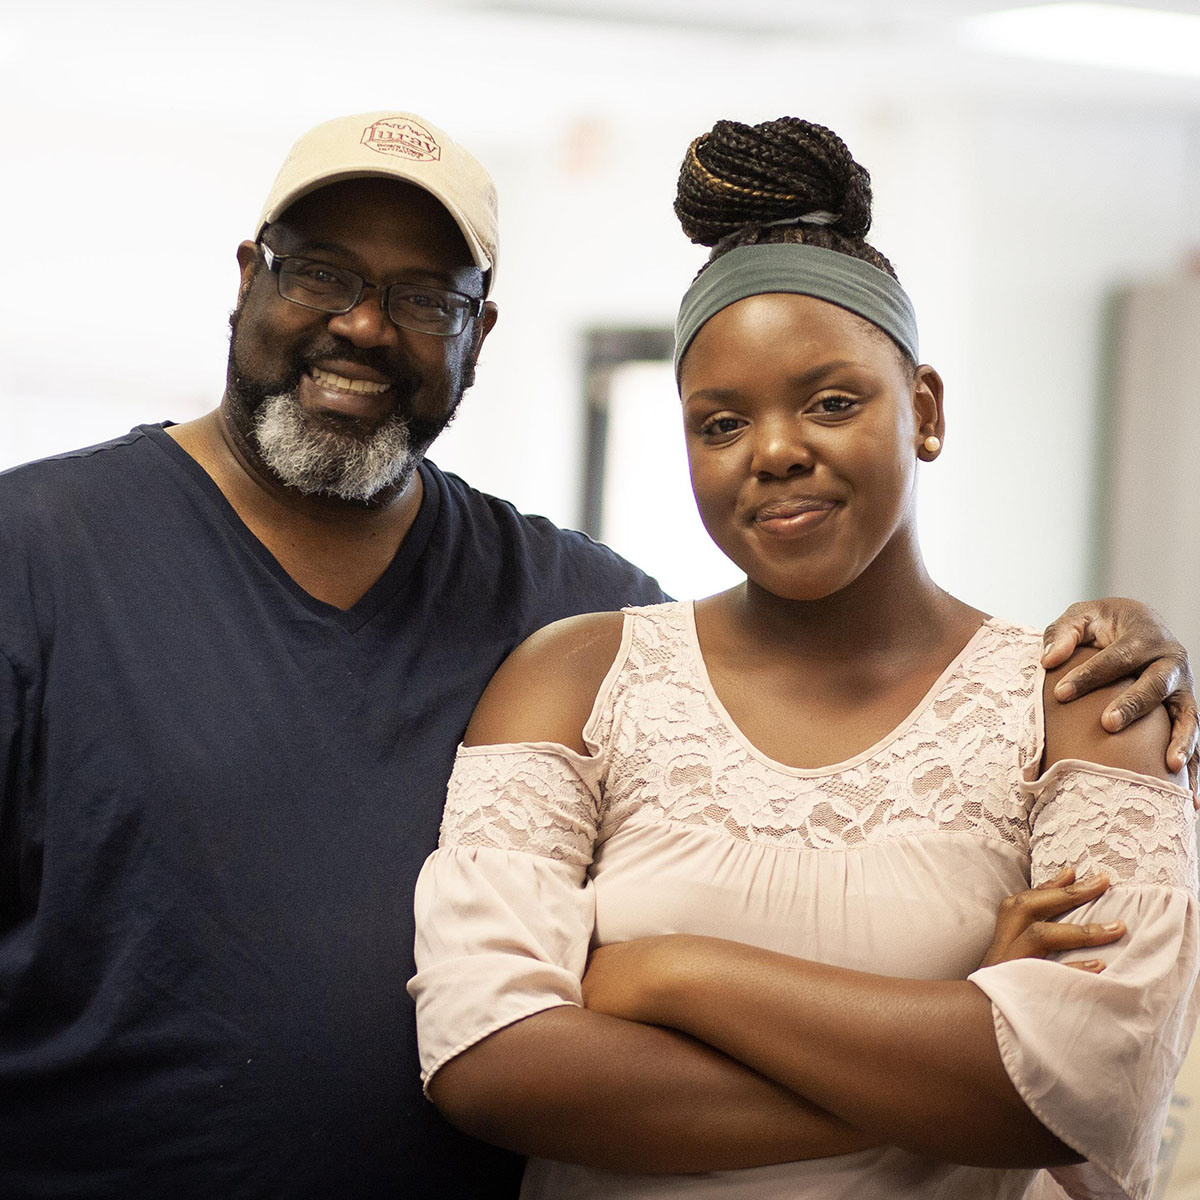 Maurice Norman and his daughter